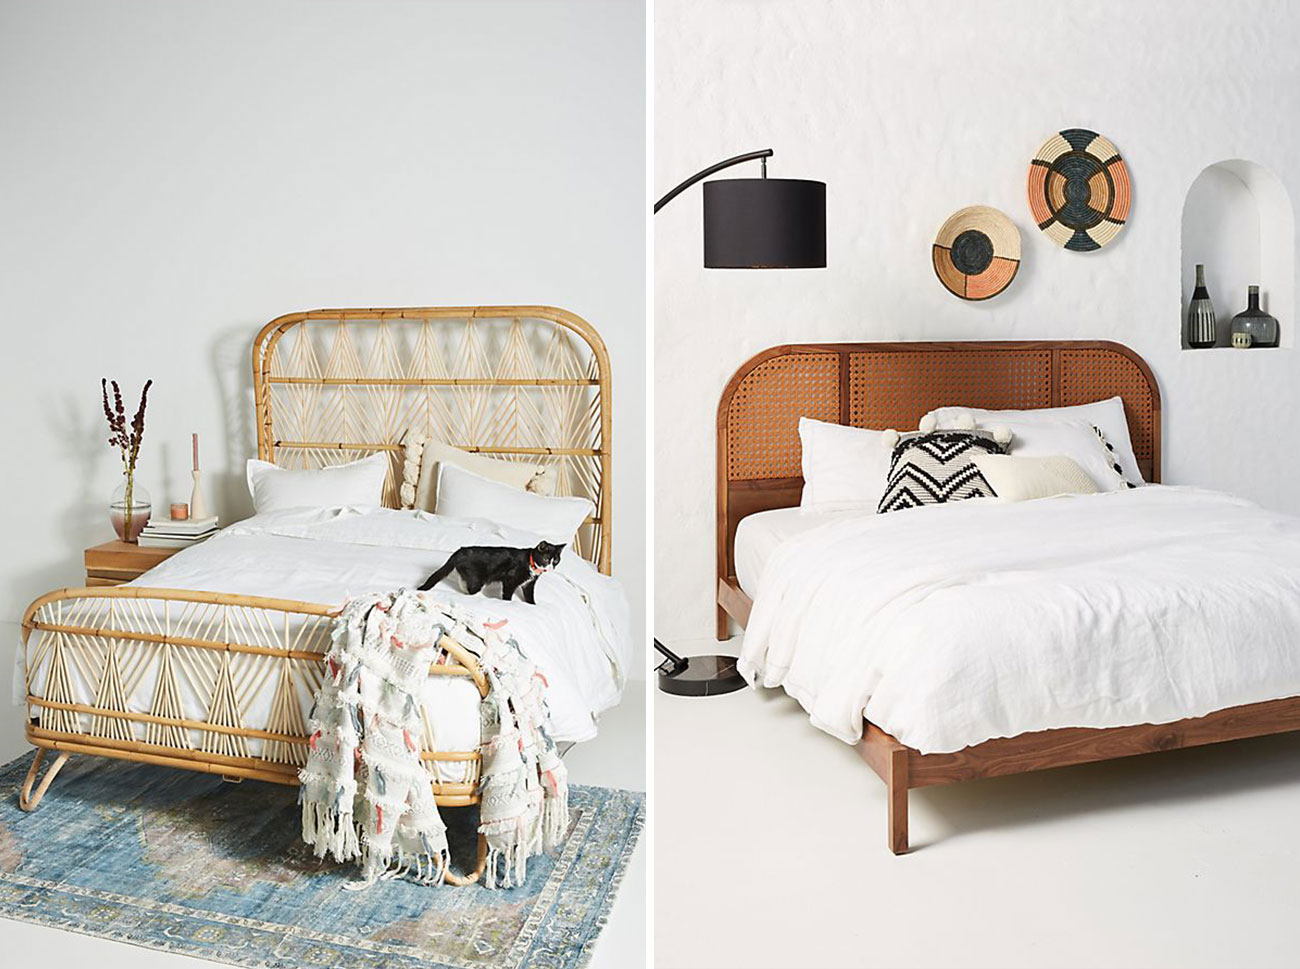 These Boho Headboards Will Give Your Entire Bedroom a New ... on Modern Boho Bed Frame  id=60697